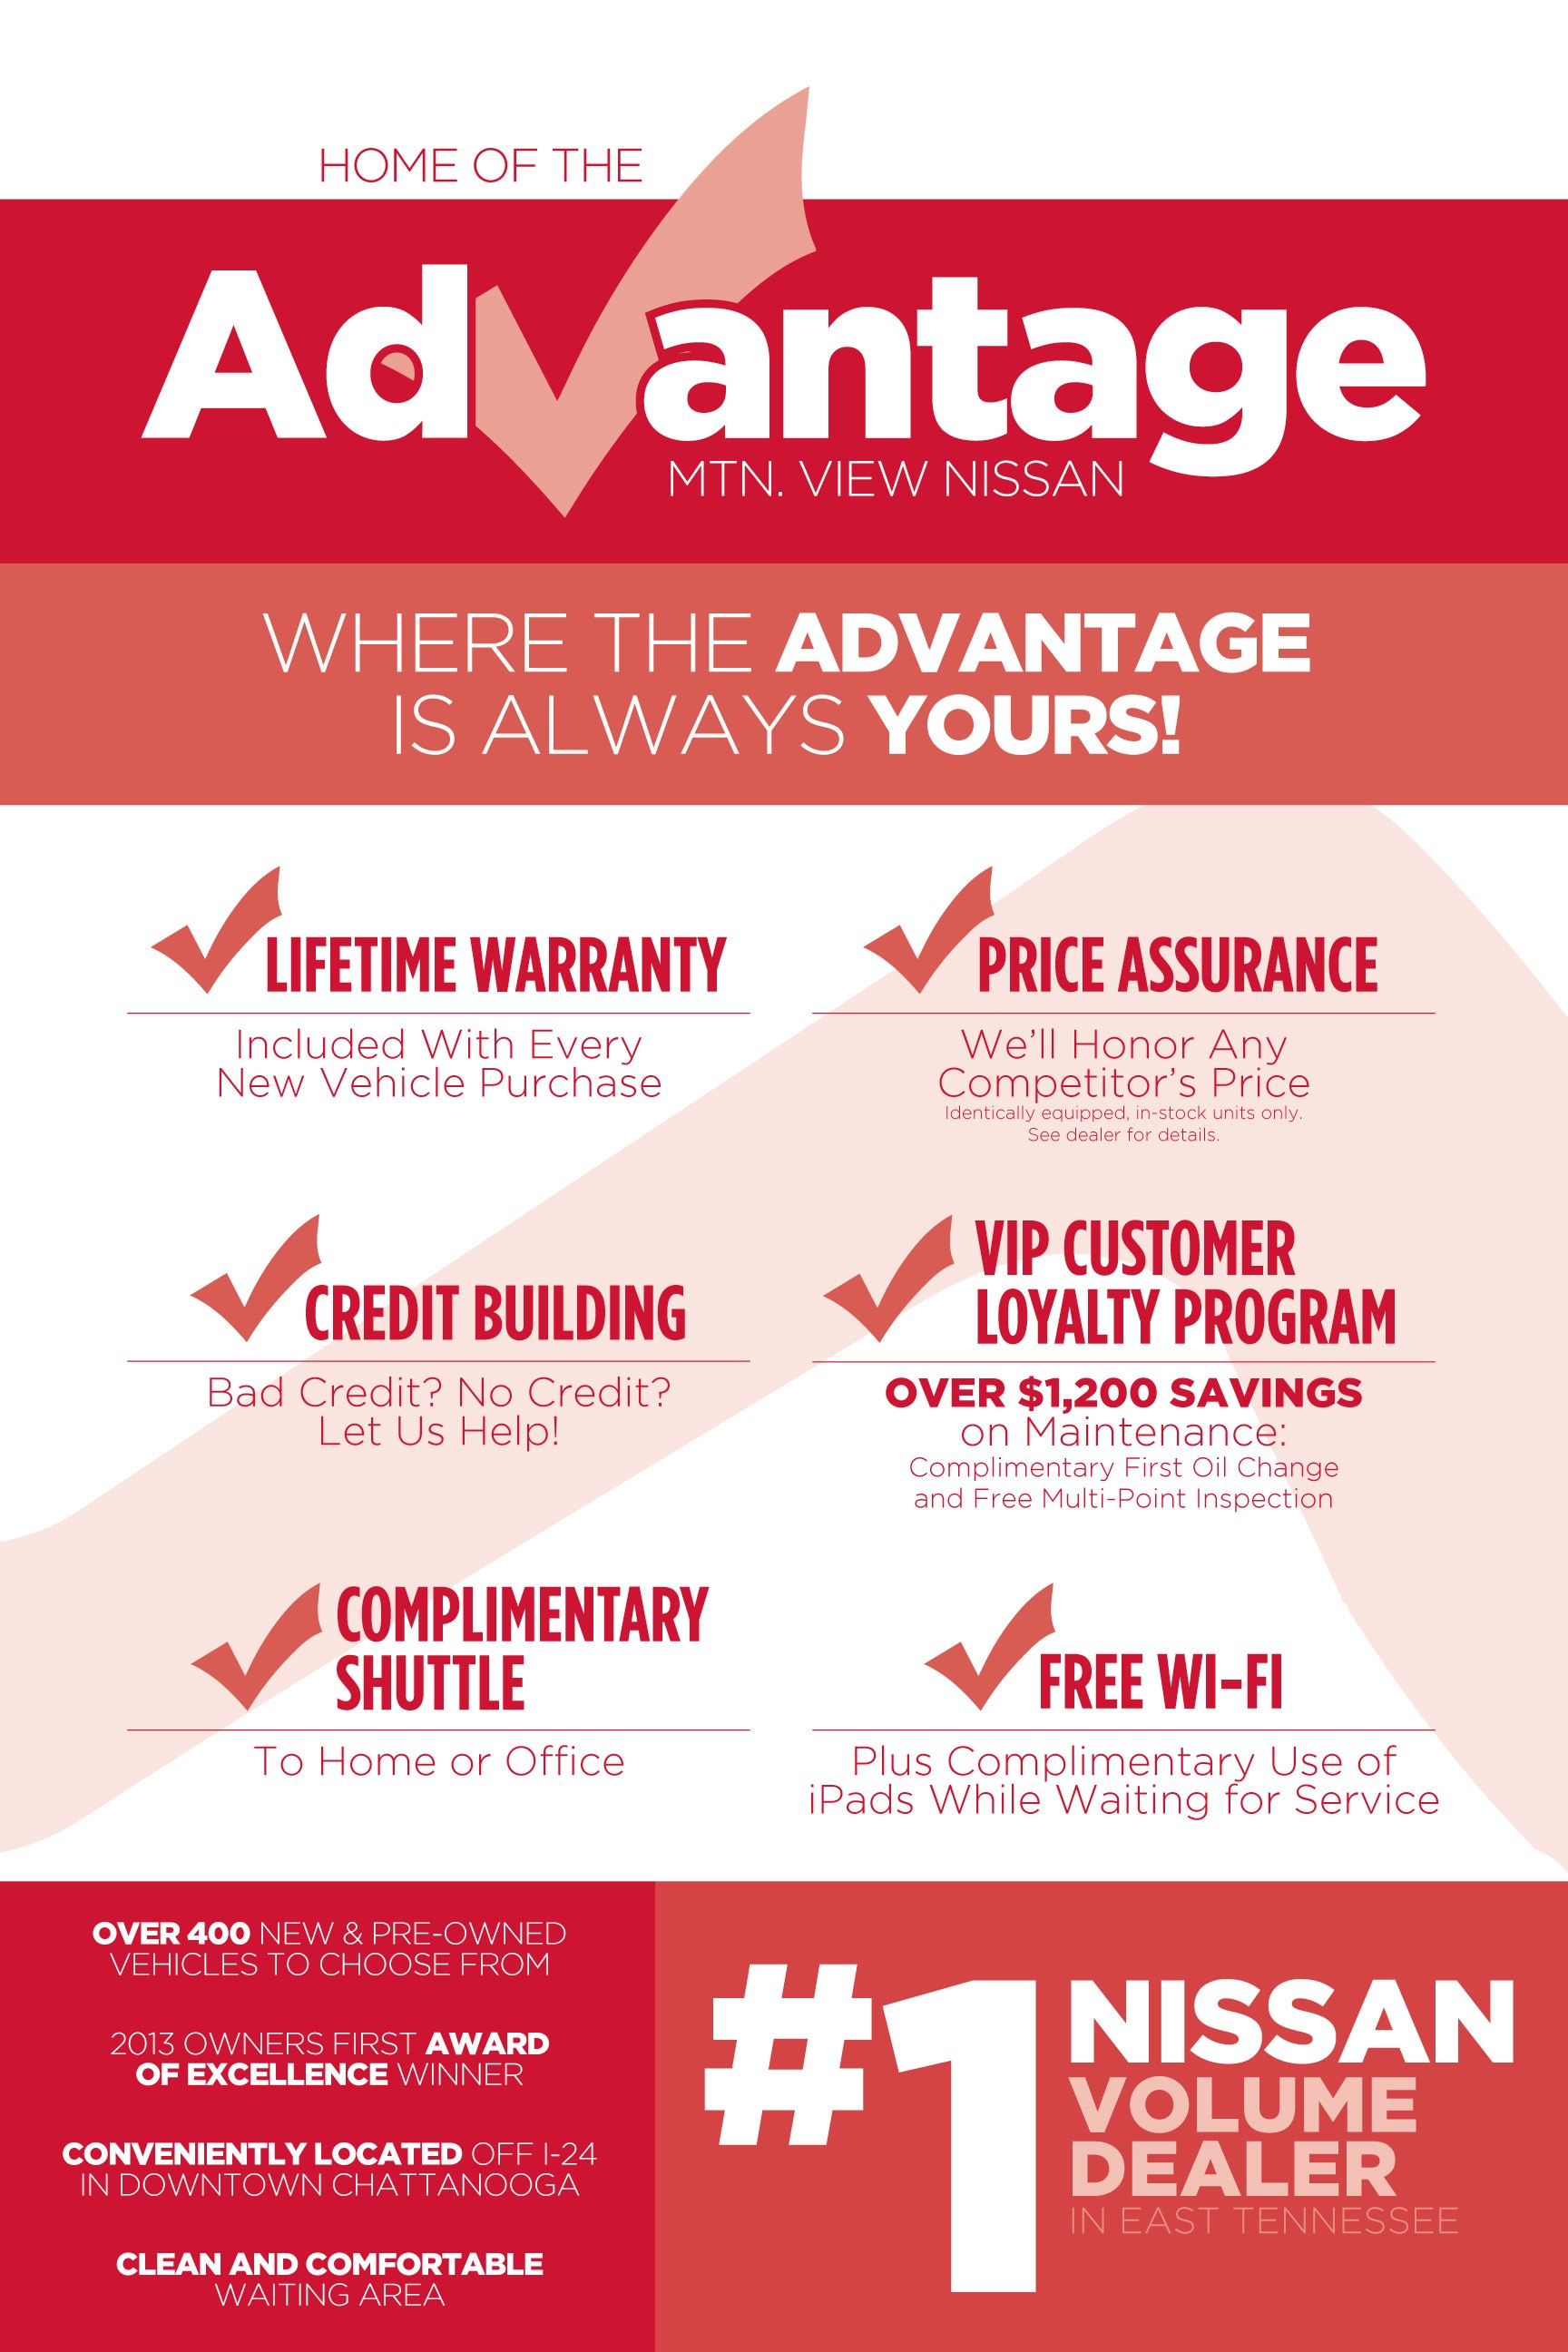 the mtn. view advantage | nissan dealership in chattanooga